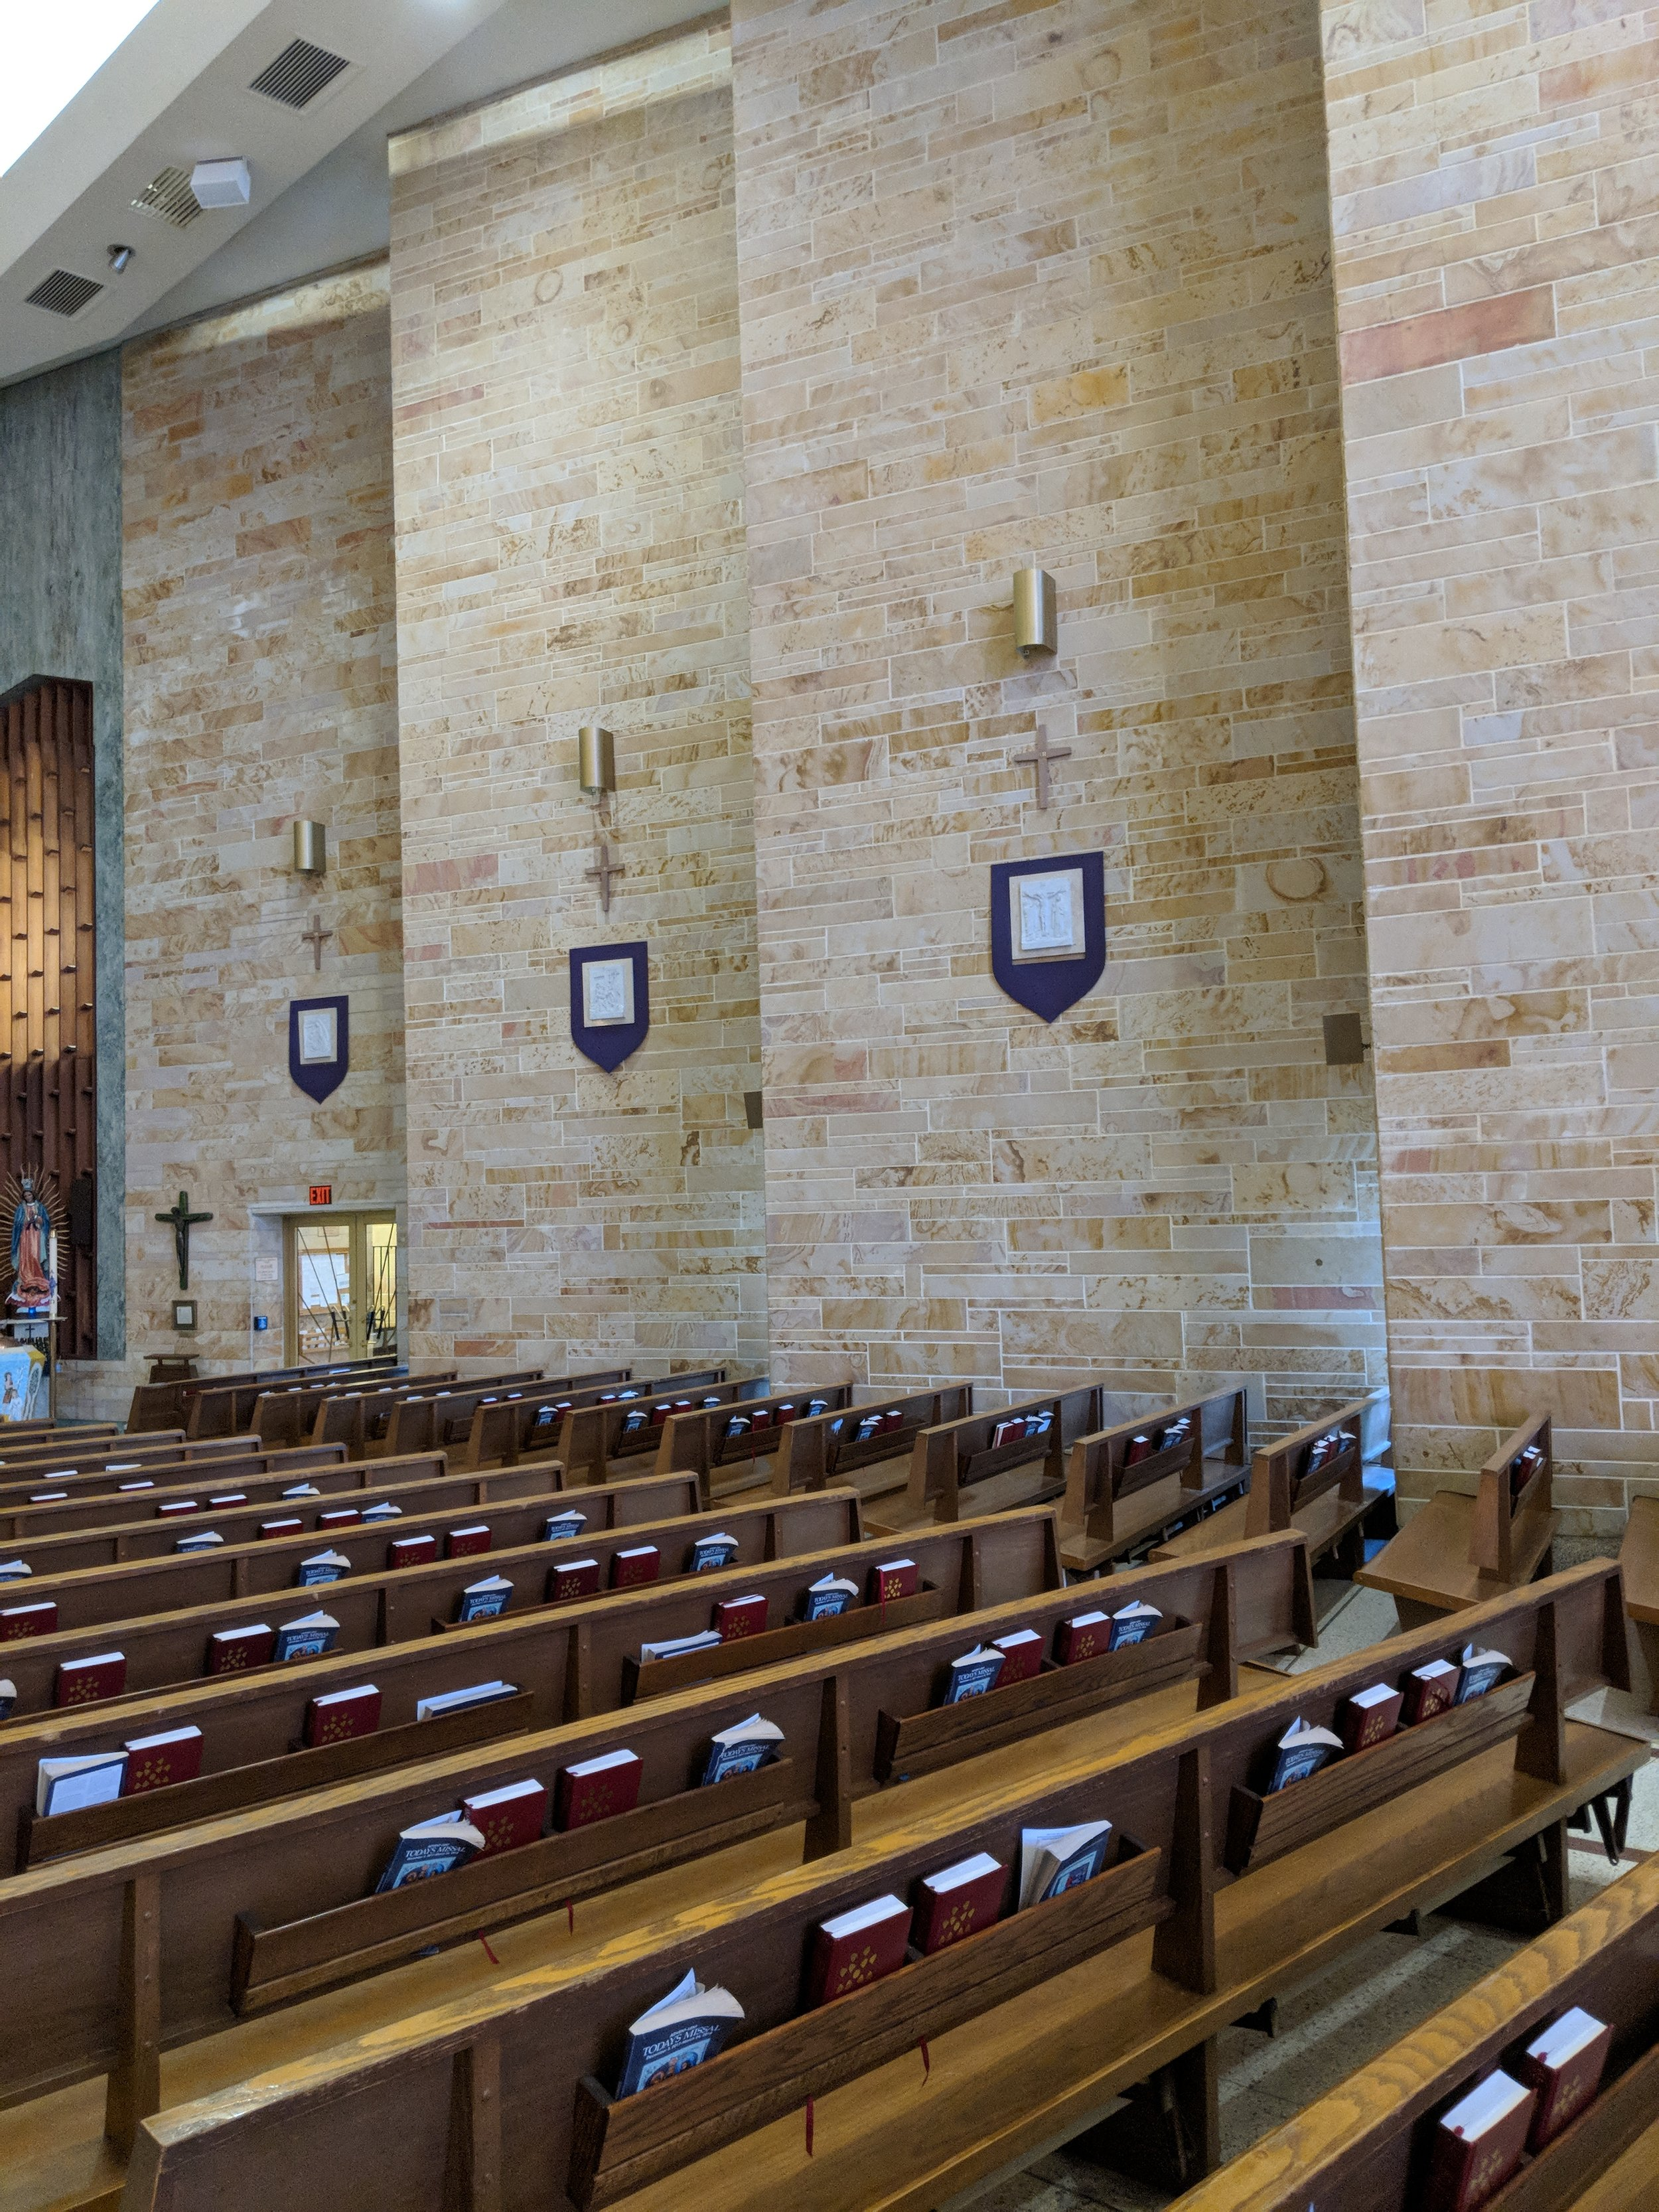 CAMM DT-200 speakers line the Nave walls to provide complete coverage in all seating areas.